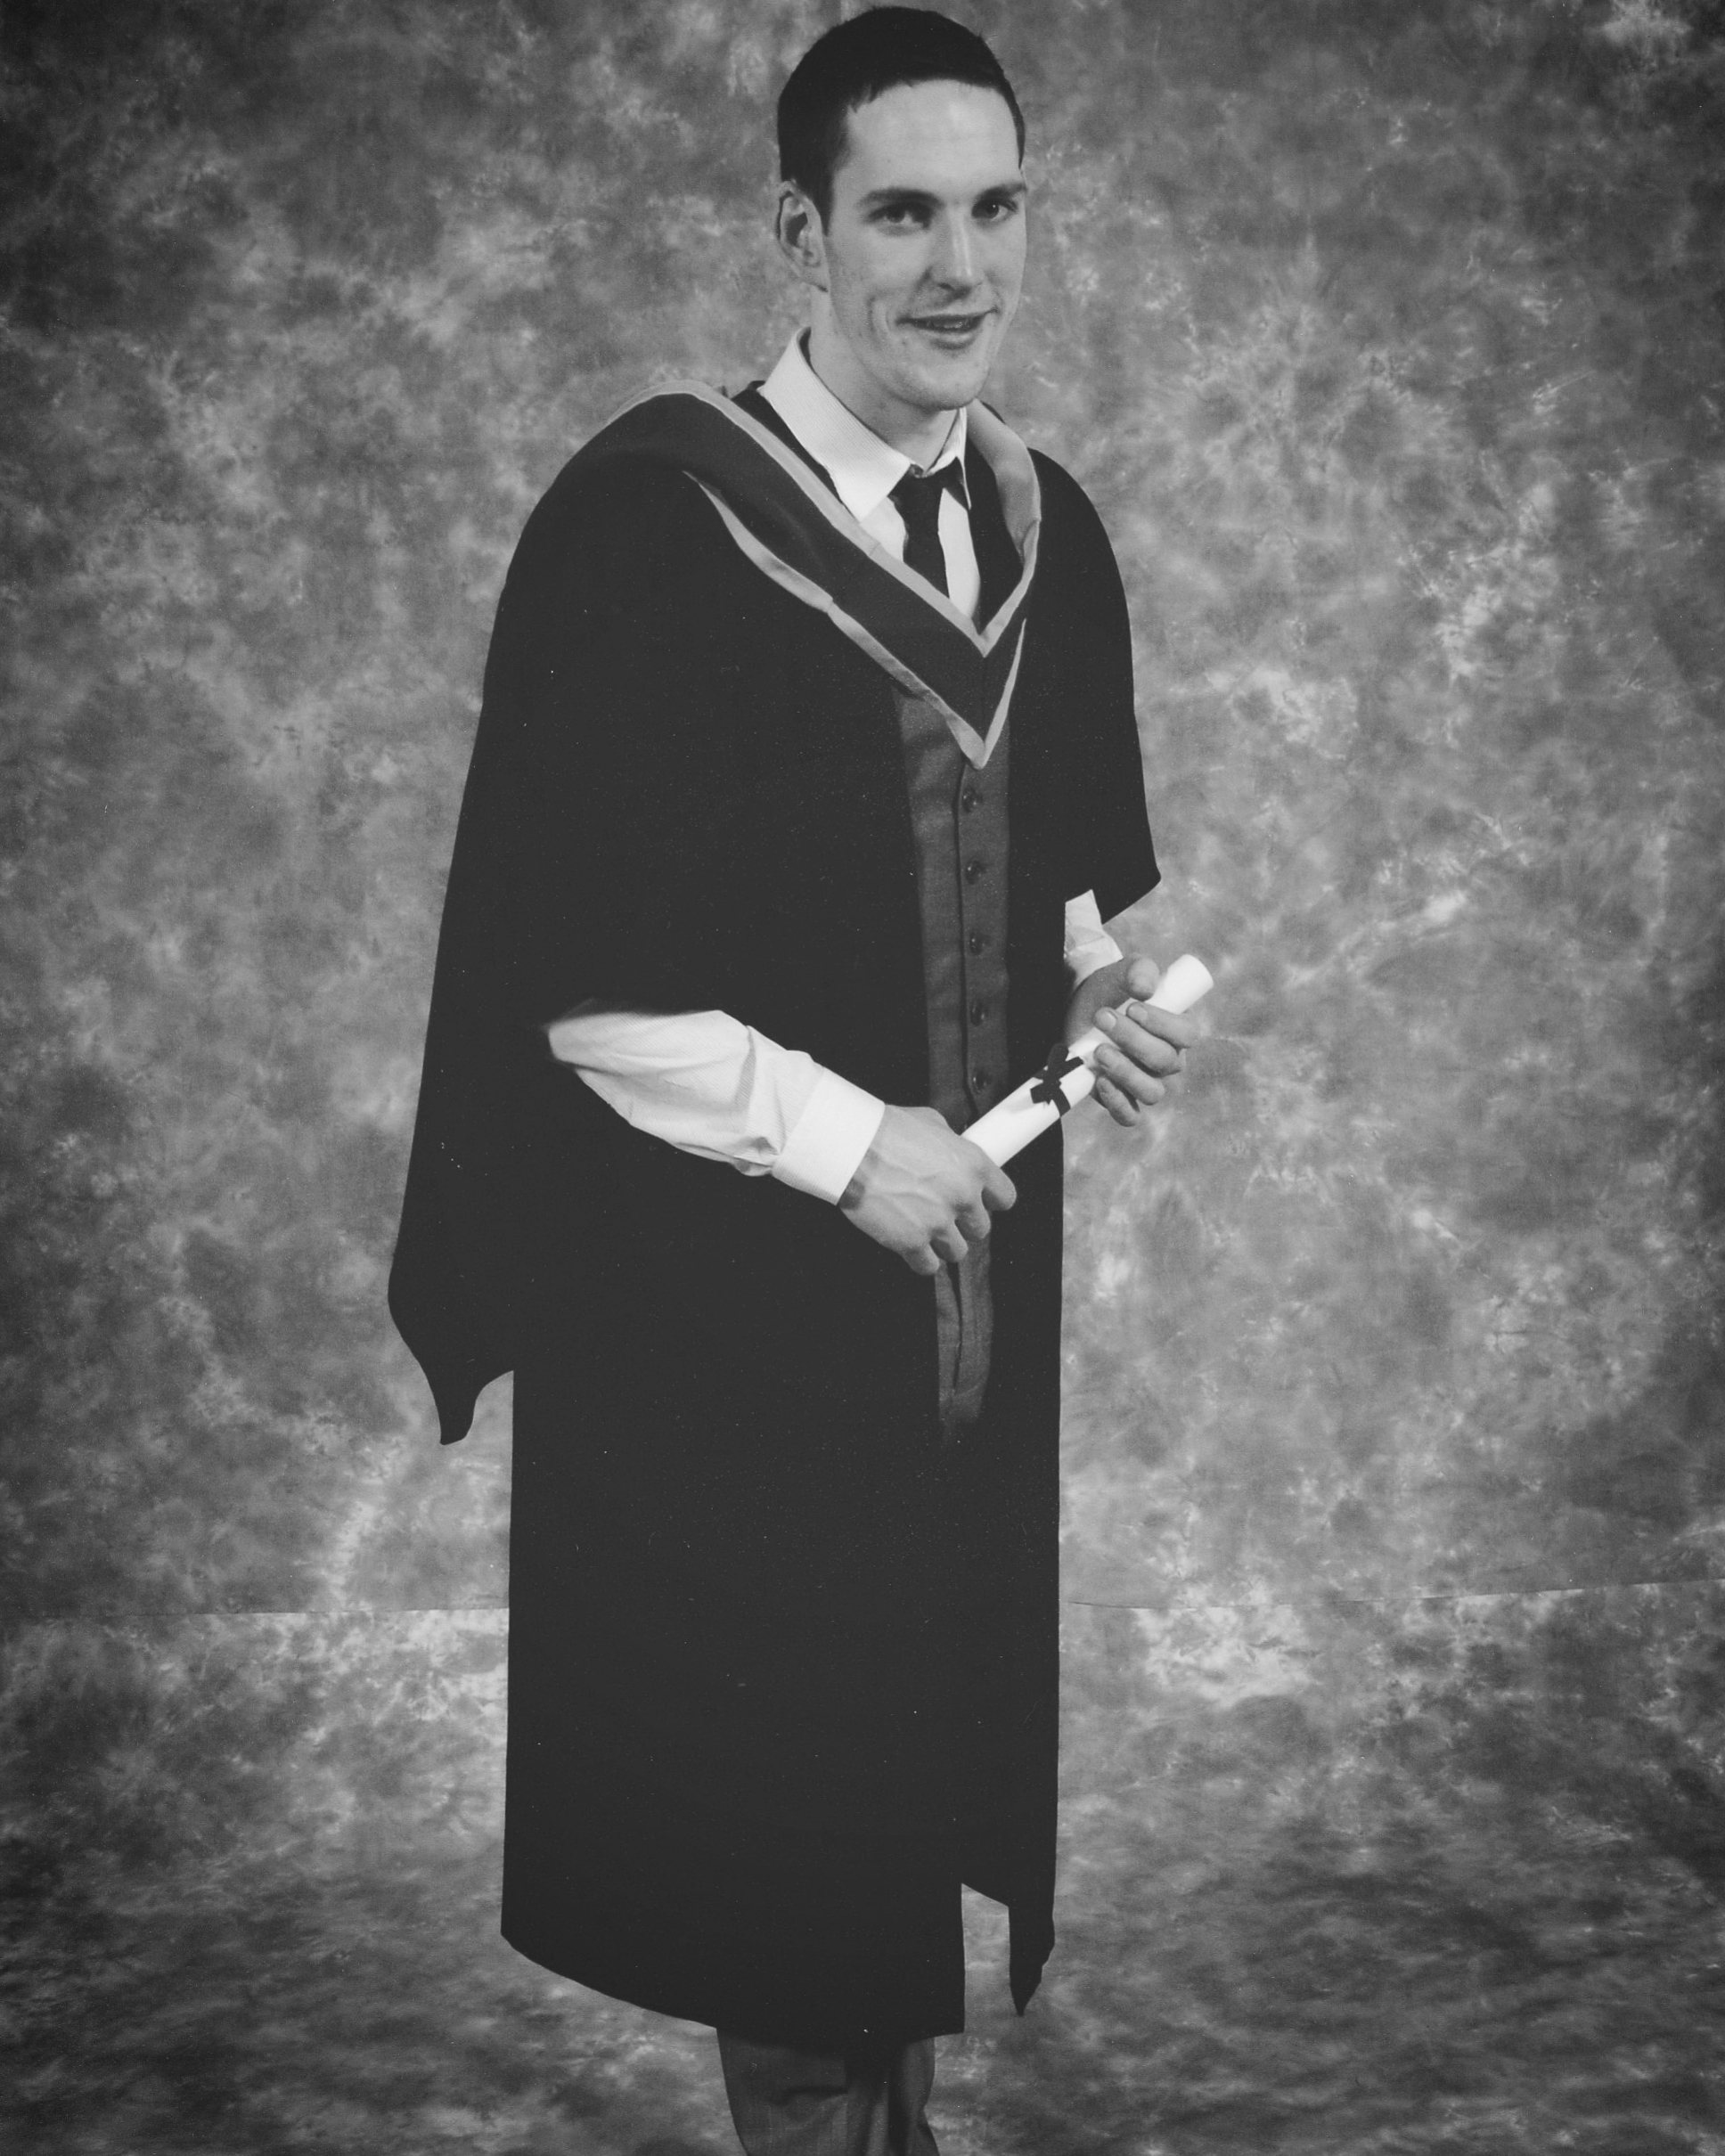 2011-Paul Graduates from Furniture Design and Manucture